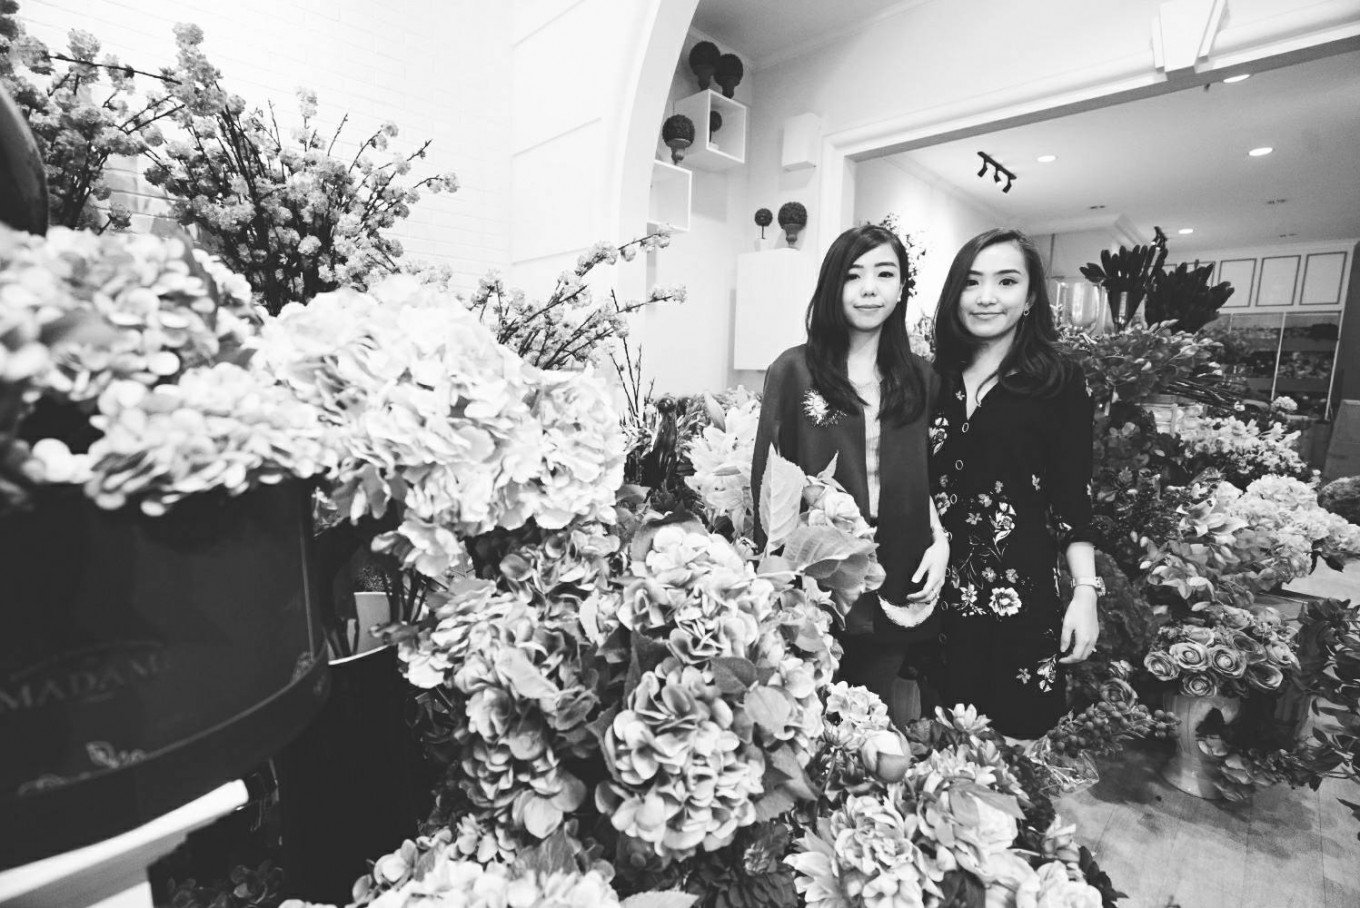 Sisters set down own roots to bloom in flower business